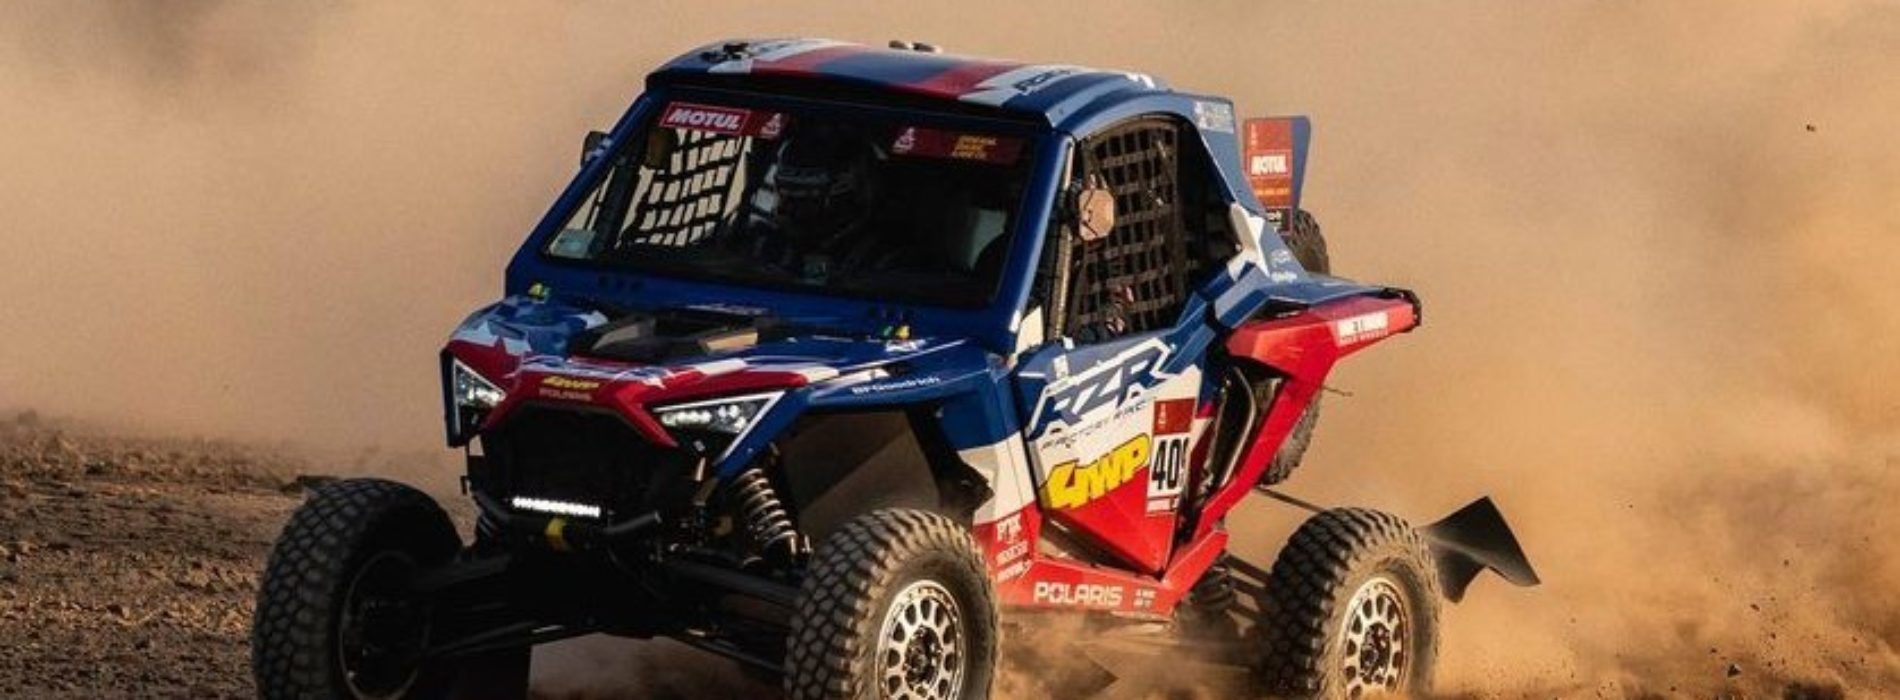 Kristen Matlock takes on all challenges racing Dakar Rally- utmost admiration for such courage!